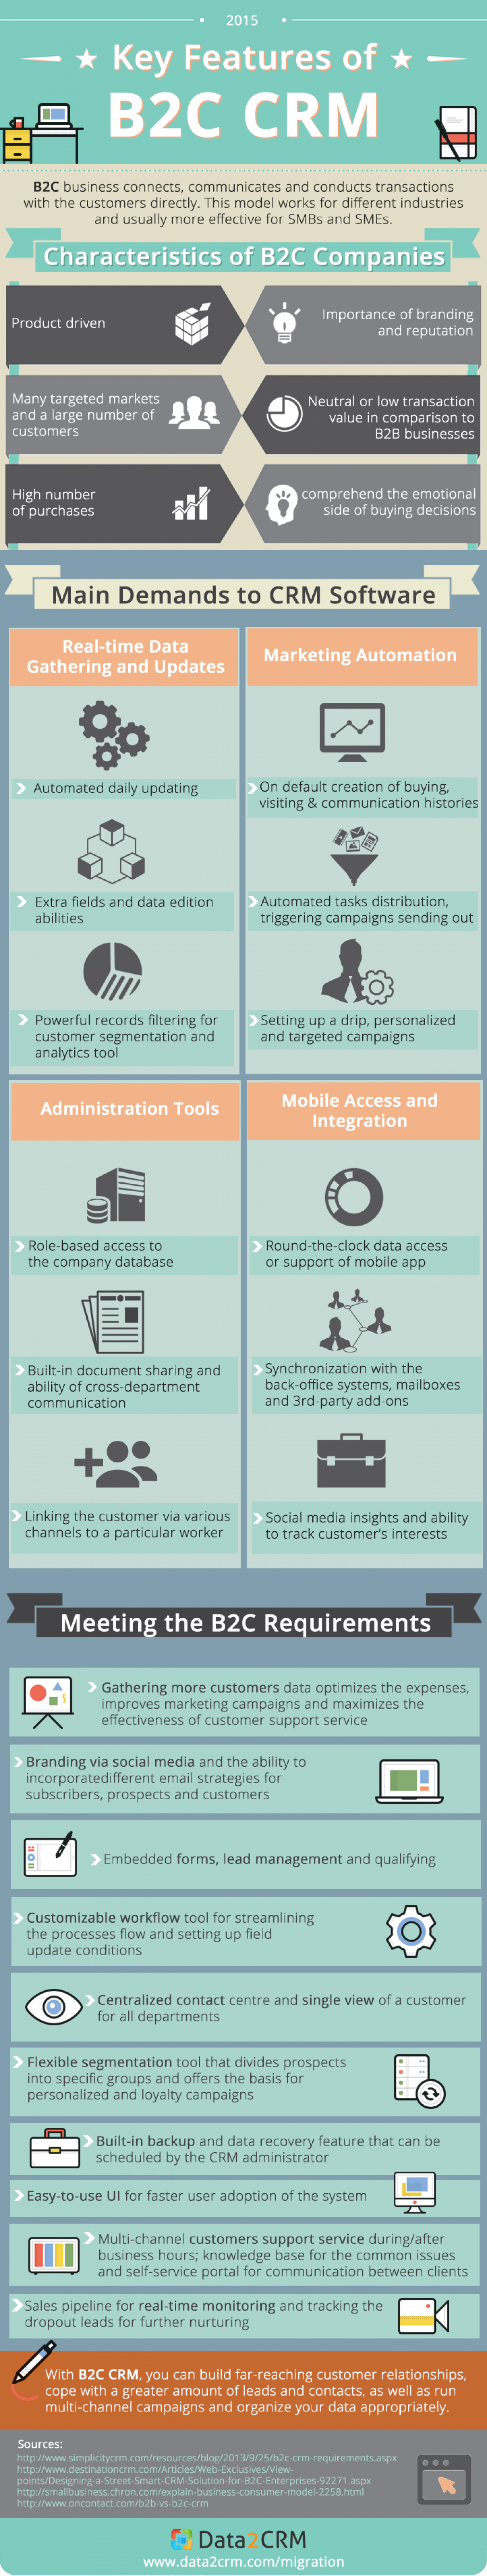 Key Features of B2C CRM Infographic